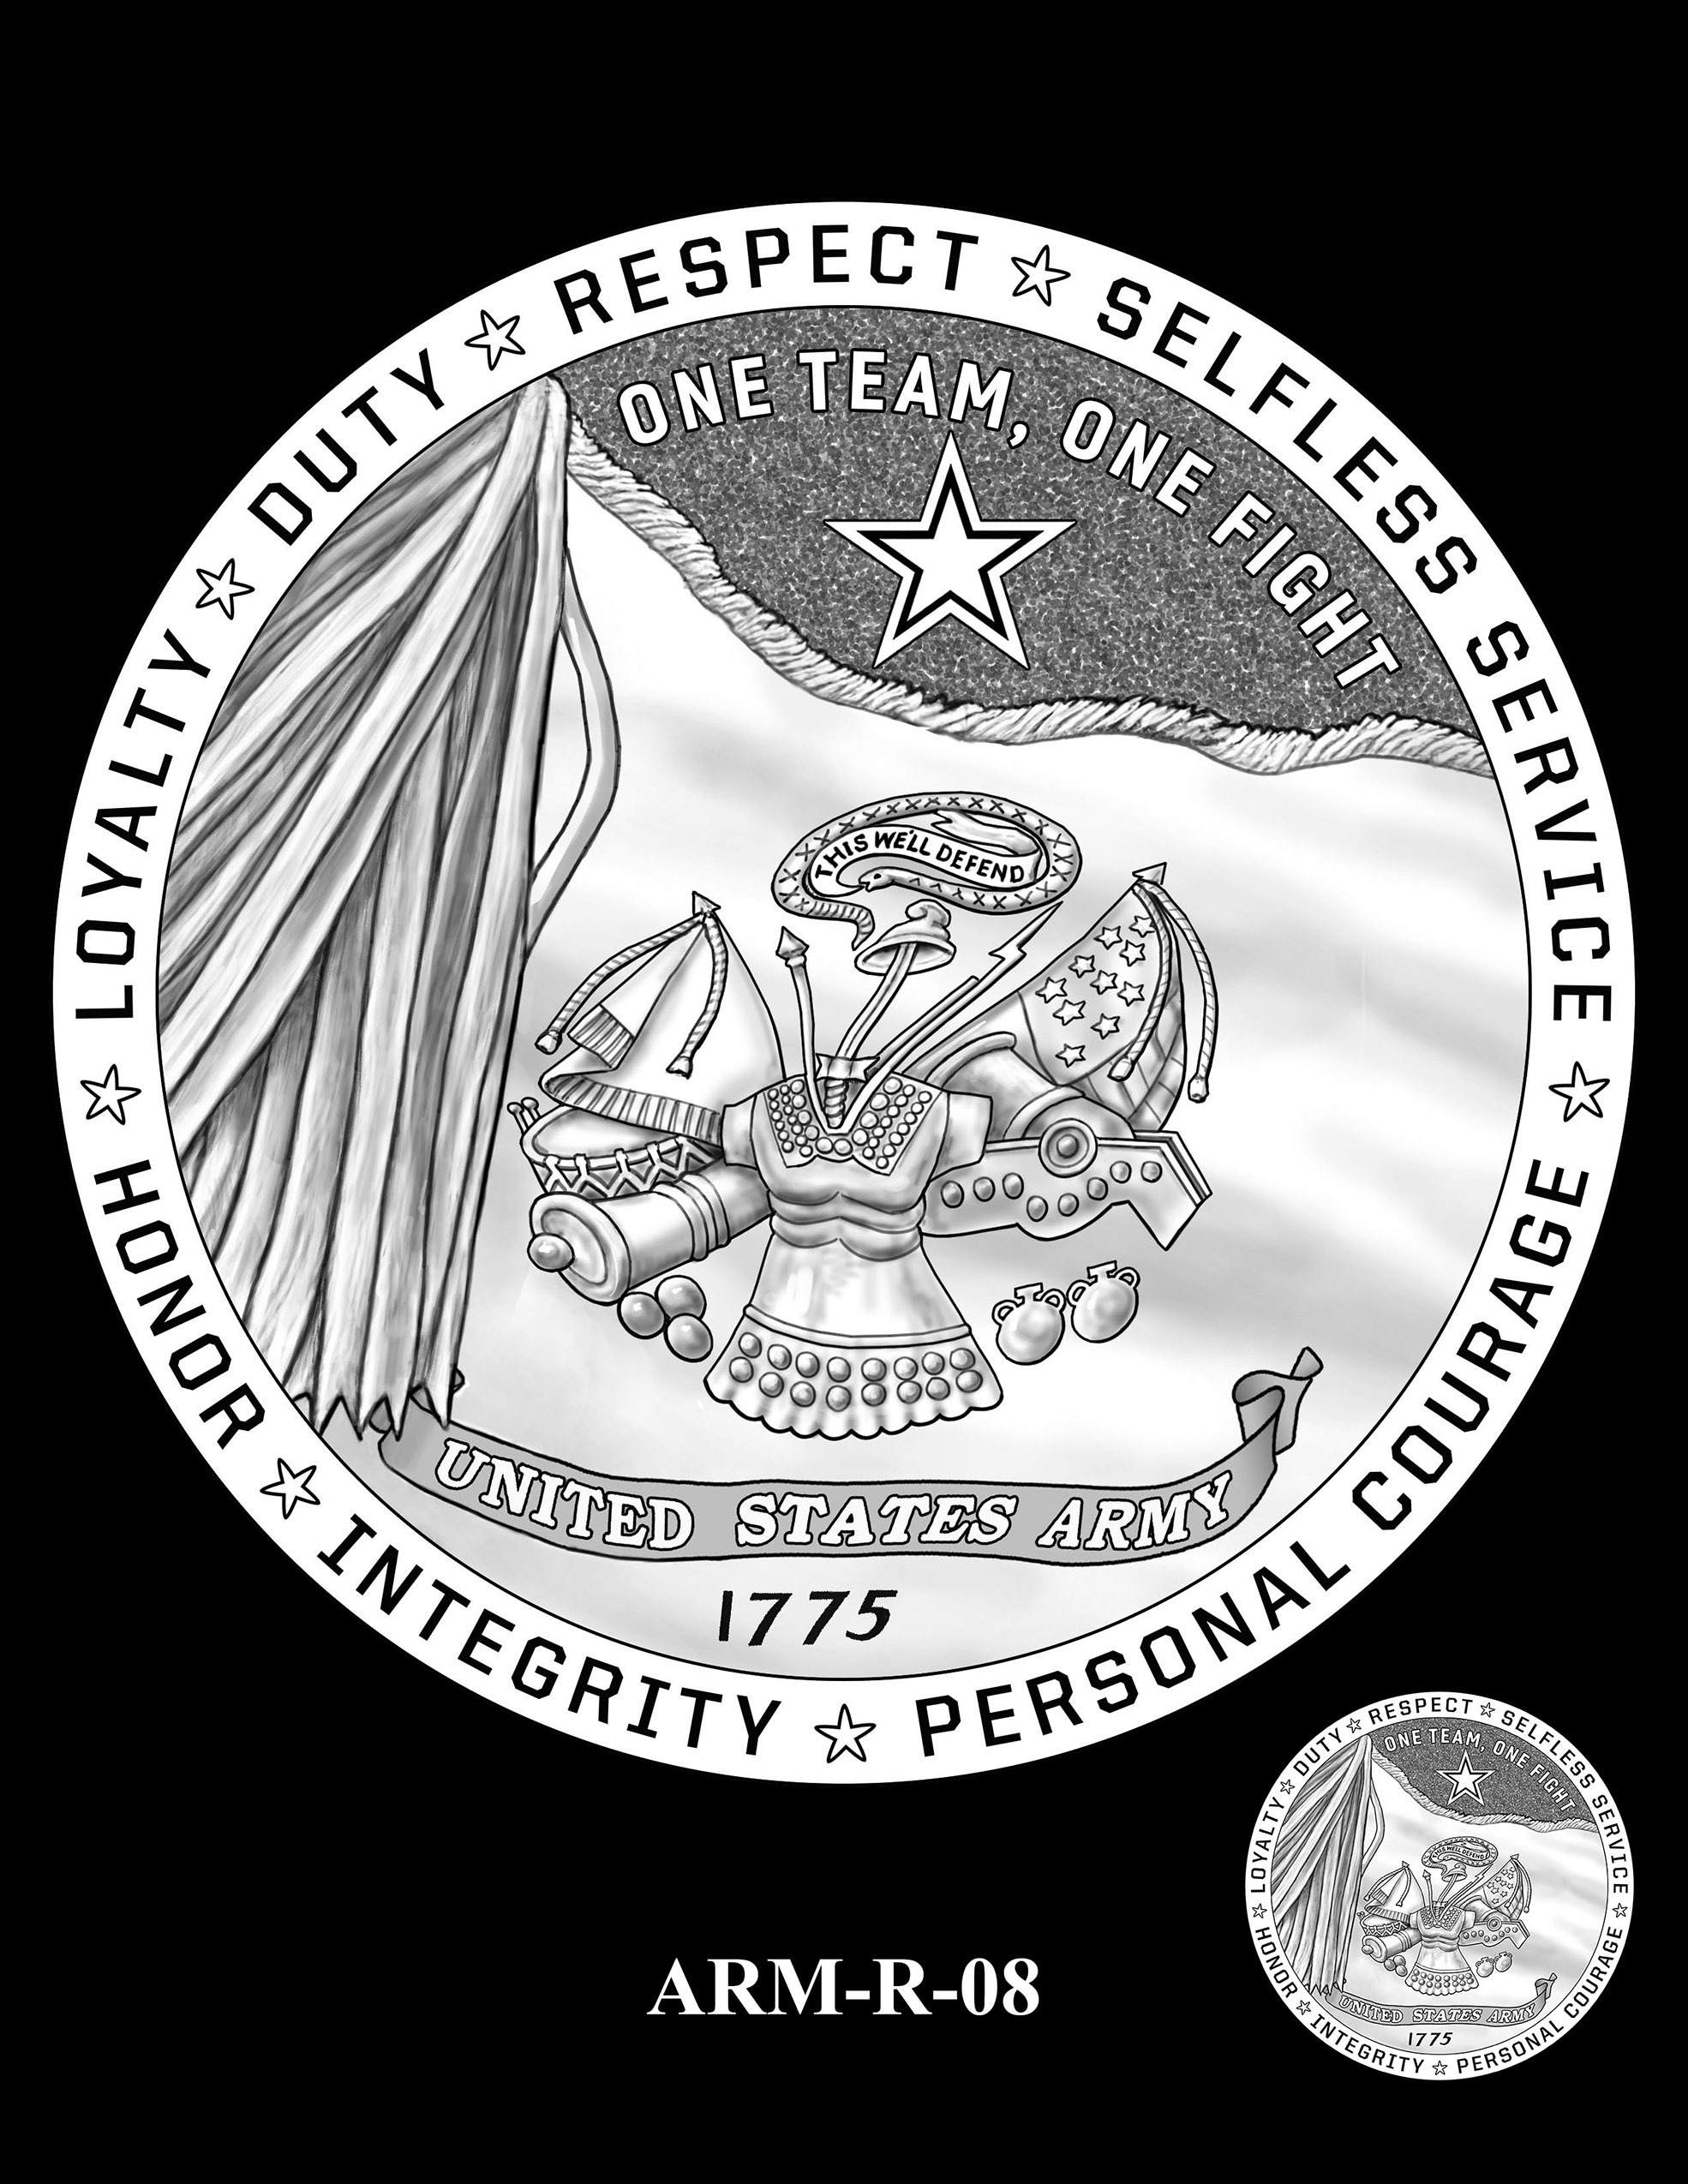 ARM-R-08 -- United States Army Silver Medal